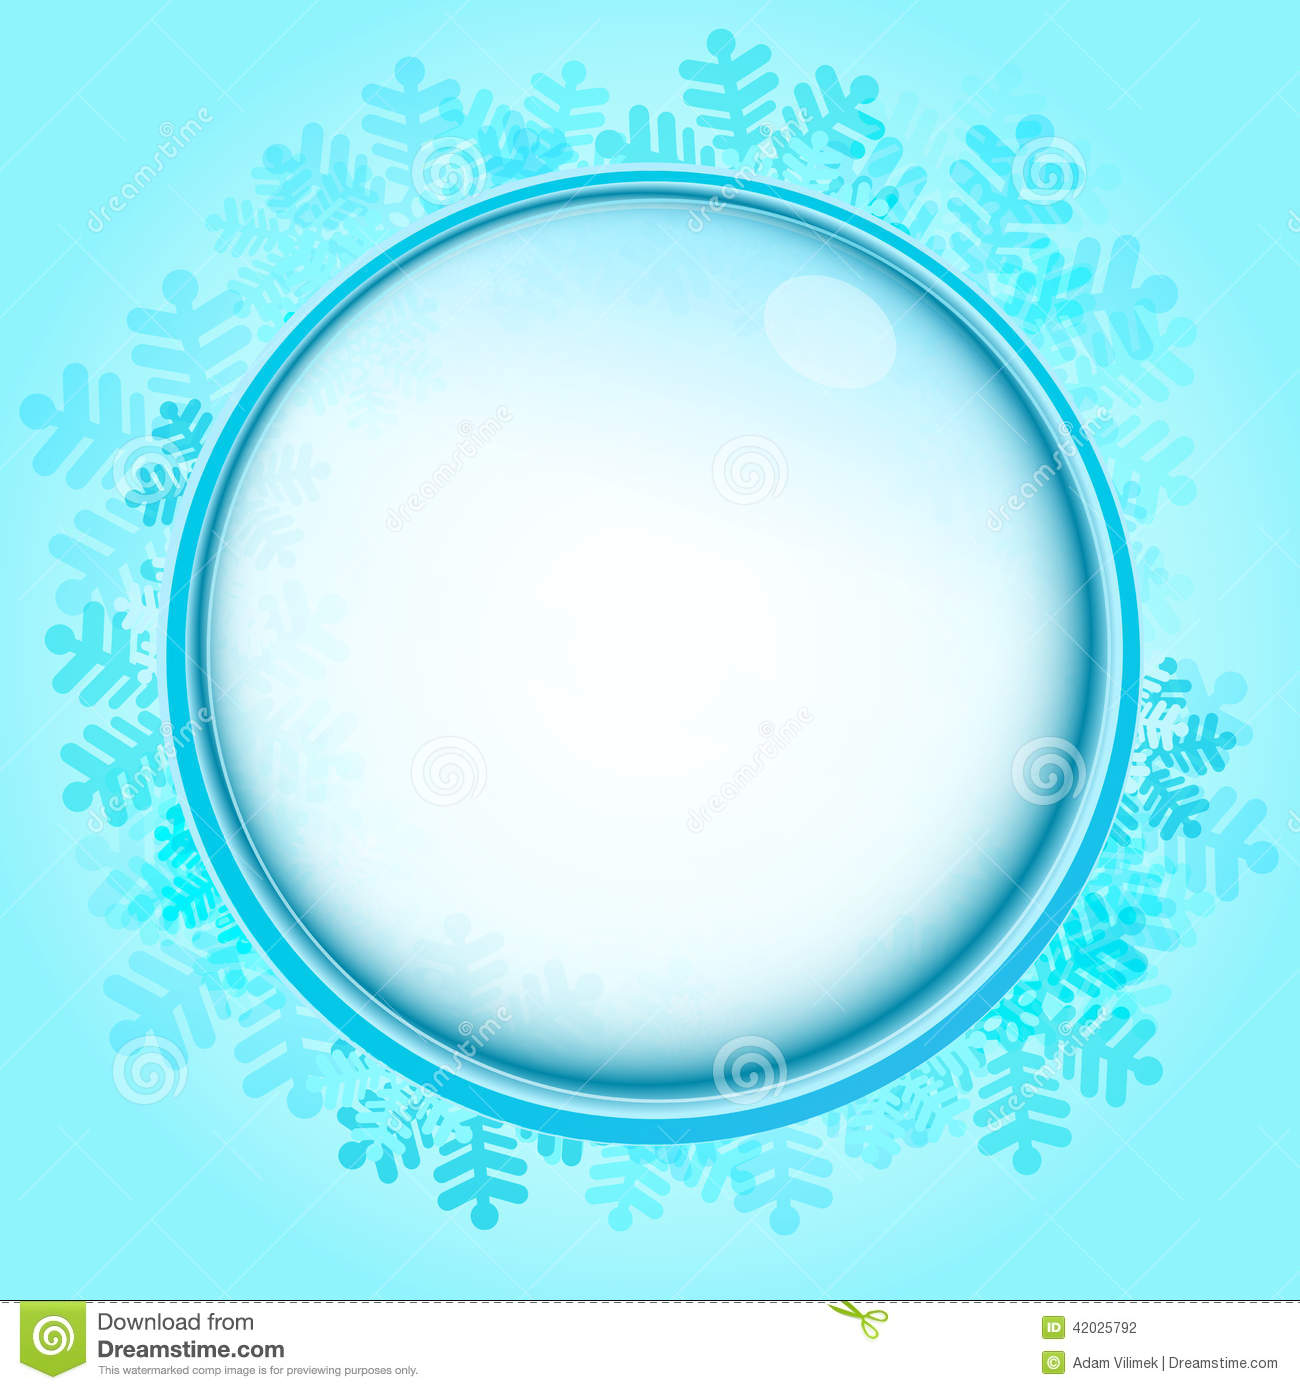 Frozen Circle Frame With Blue Snowflakes Vector Stock Vector ...